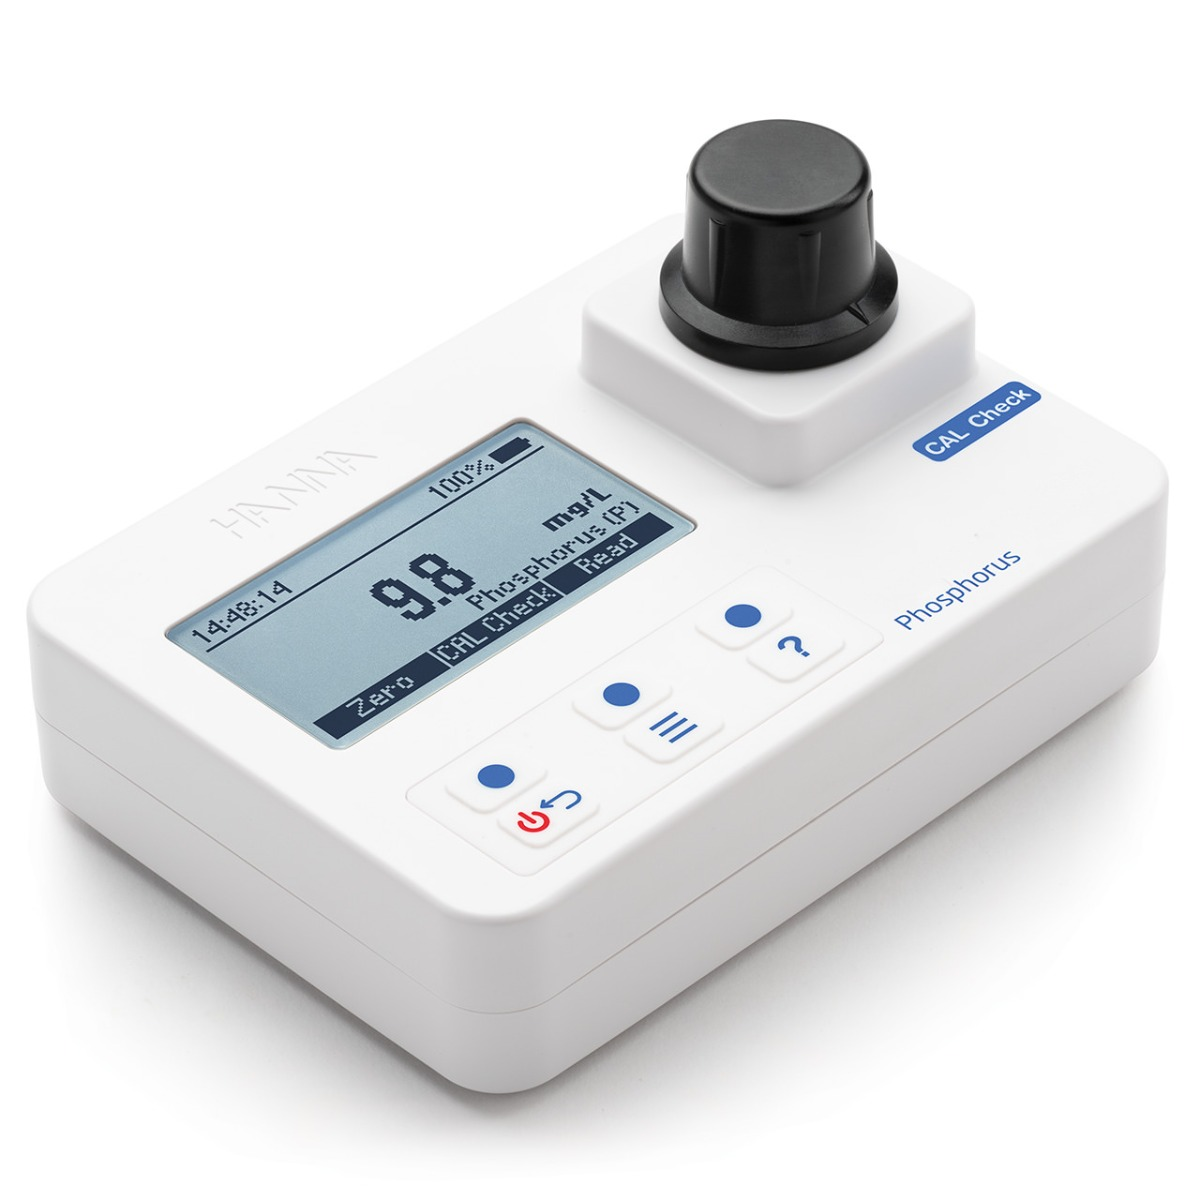 Phosphorus Portable Photometer with CAL Check – HI97706